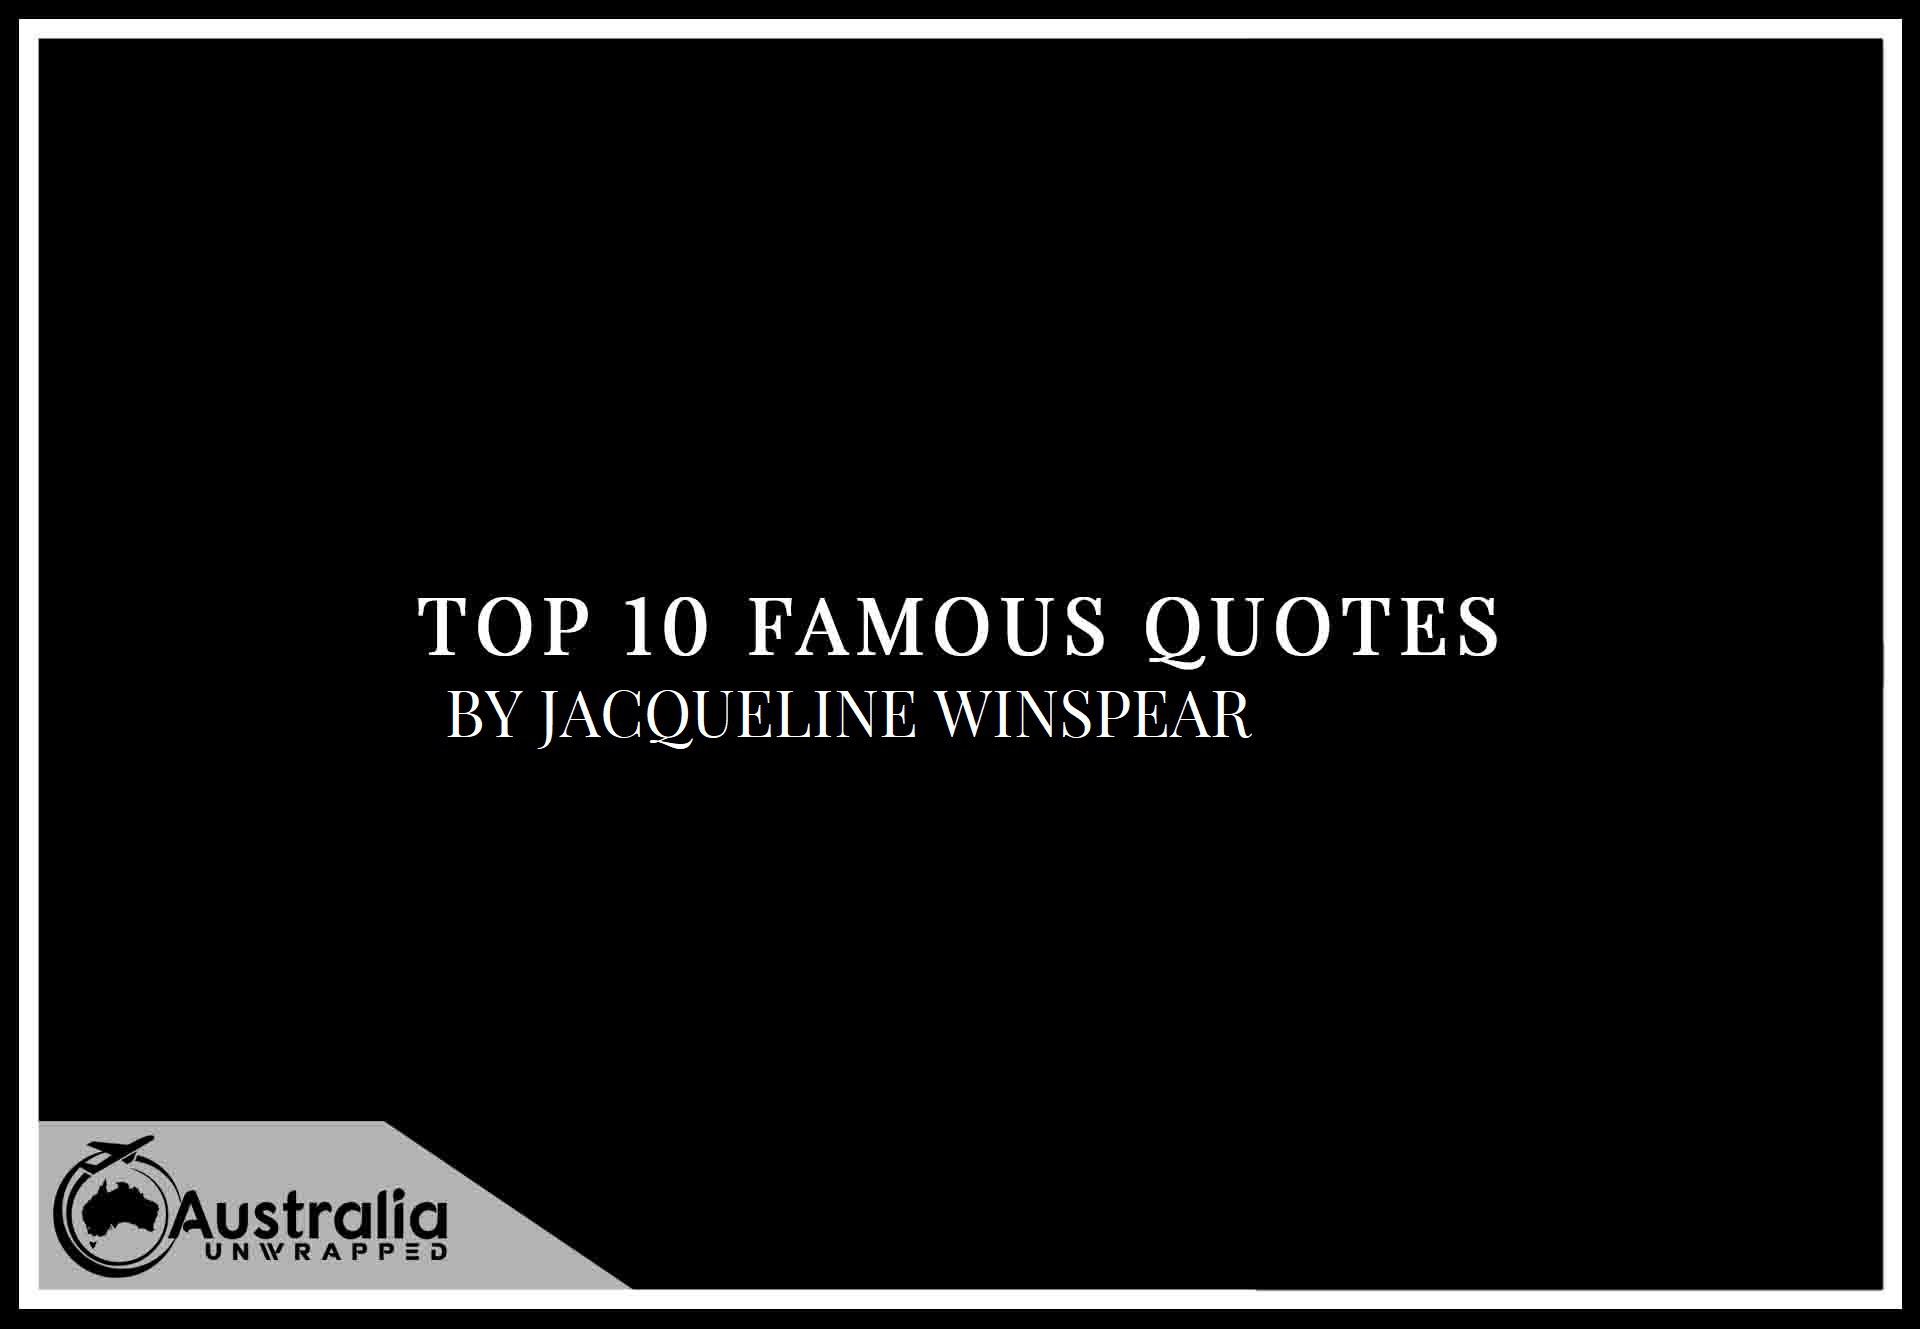 Top 10 Famous Quotes by Author Jacqueline Winspear